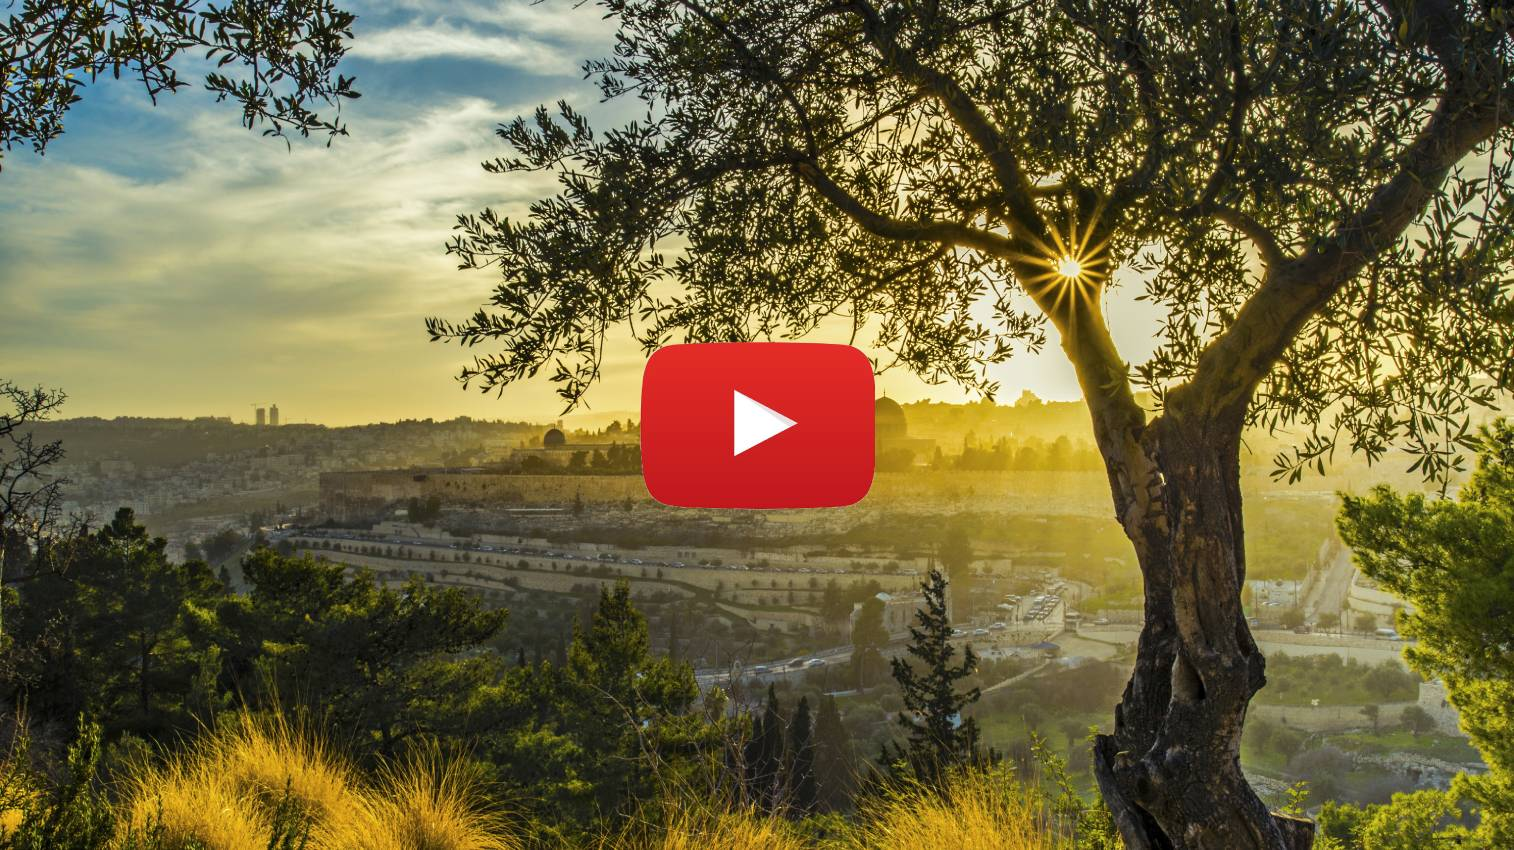 The Truth About Zionism - Parshat Va'etchanan